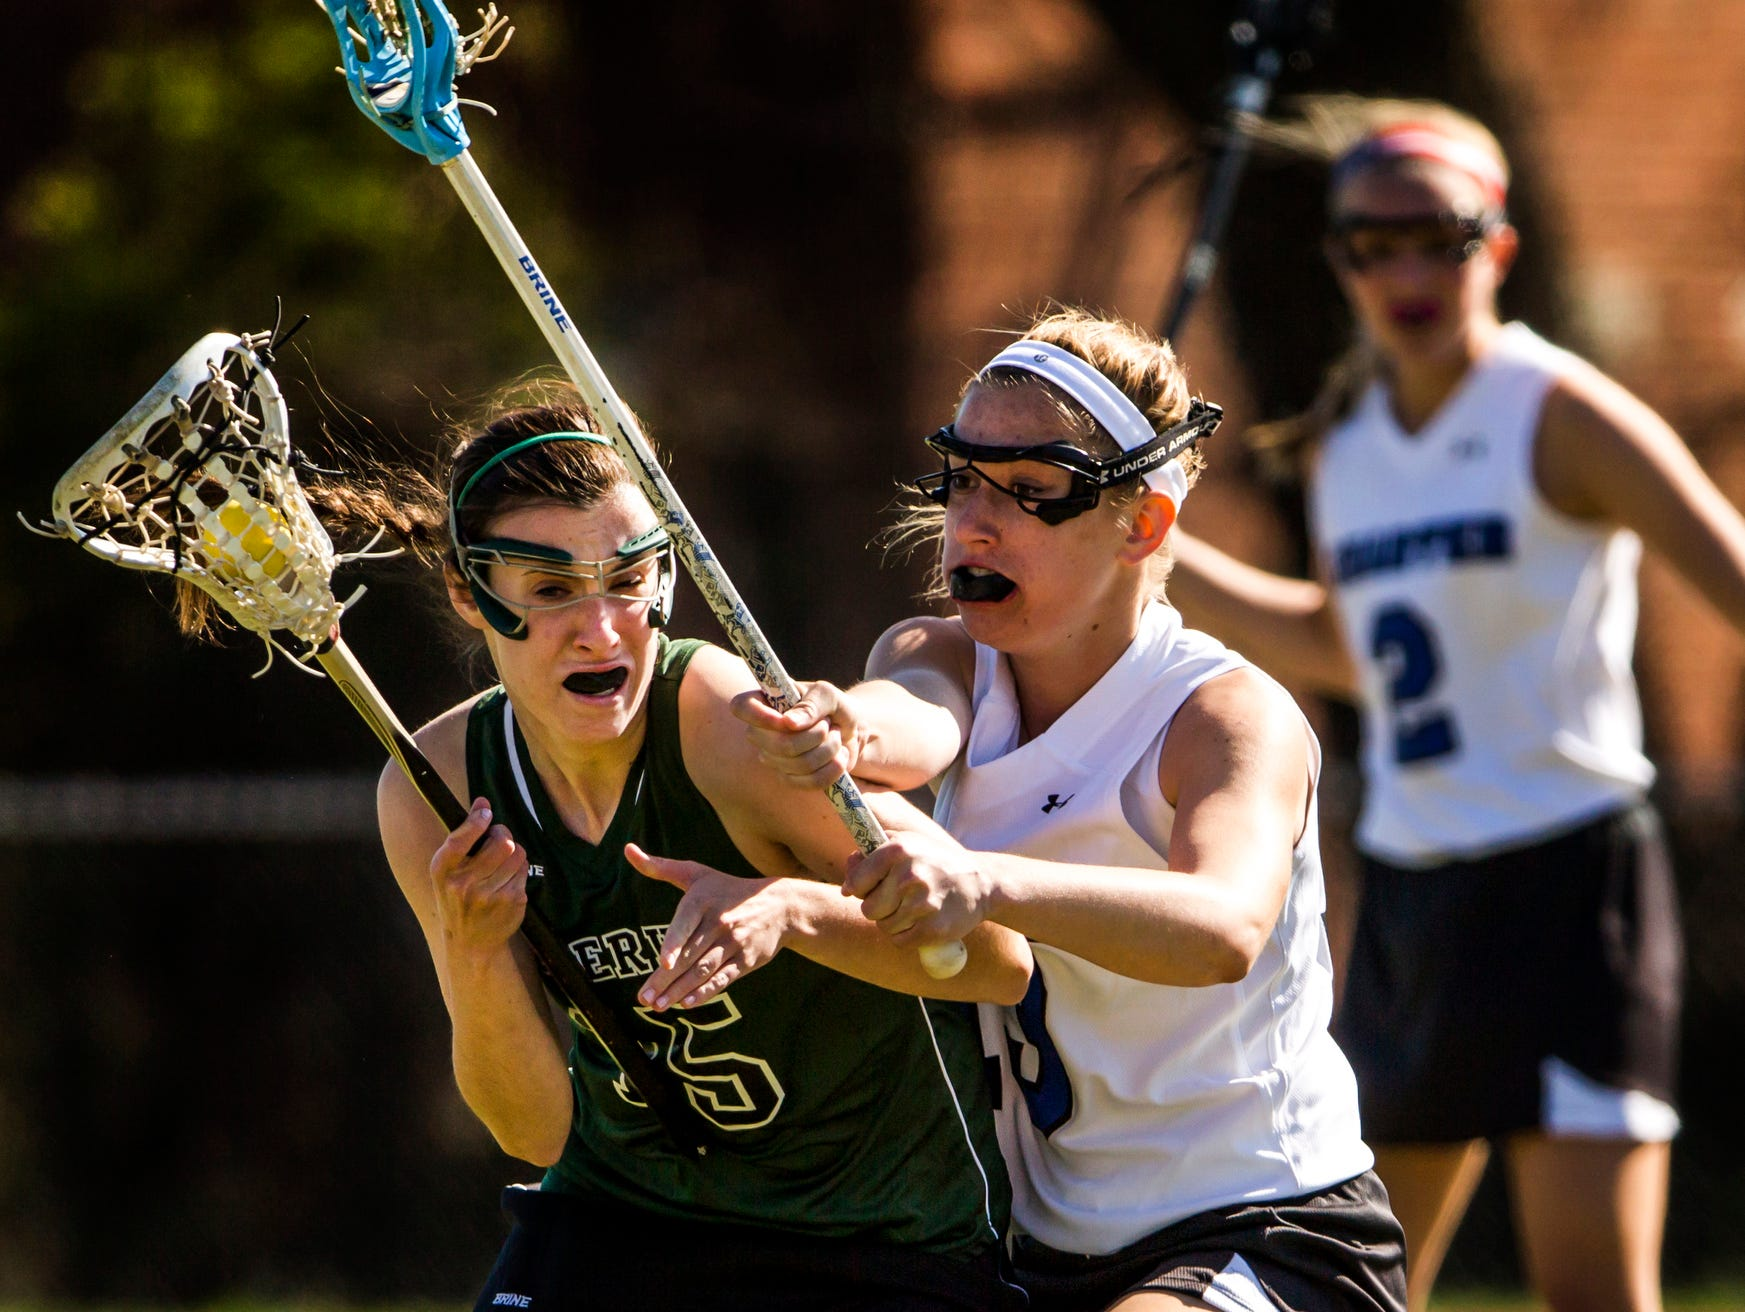 Charter's Jordan Wood (right) defends against Tower Hill's Sophie Peipher (left) in the first half of Charter's 10-9 win over Tower Hill at Charter School of Wilmington on Tuesday afternoon.